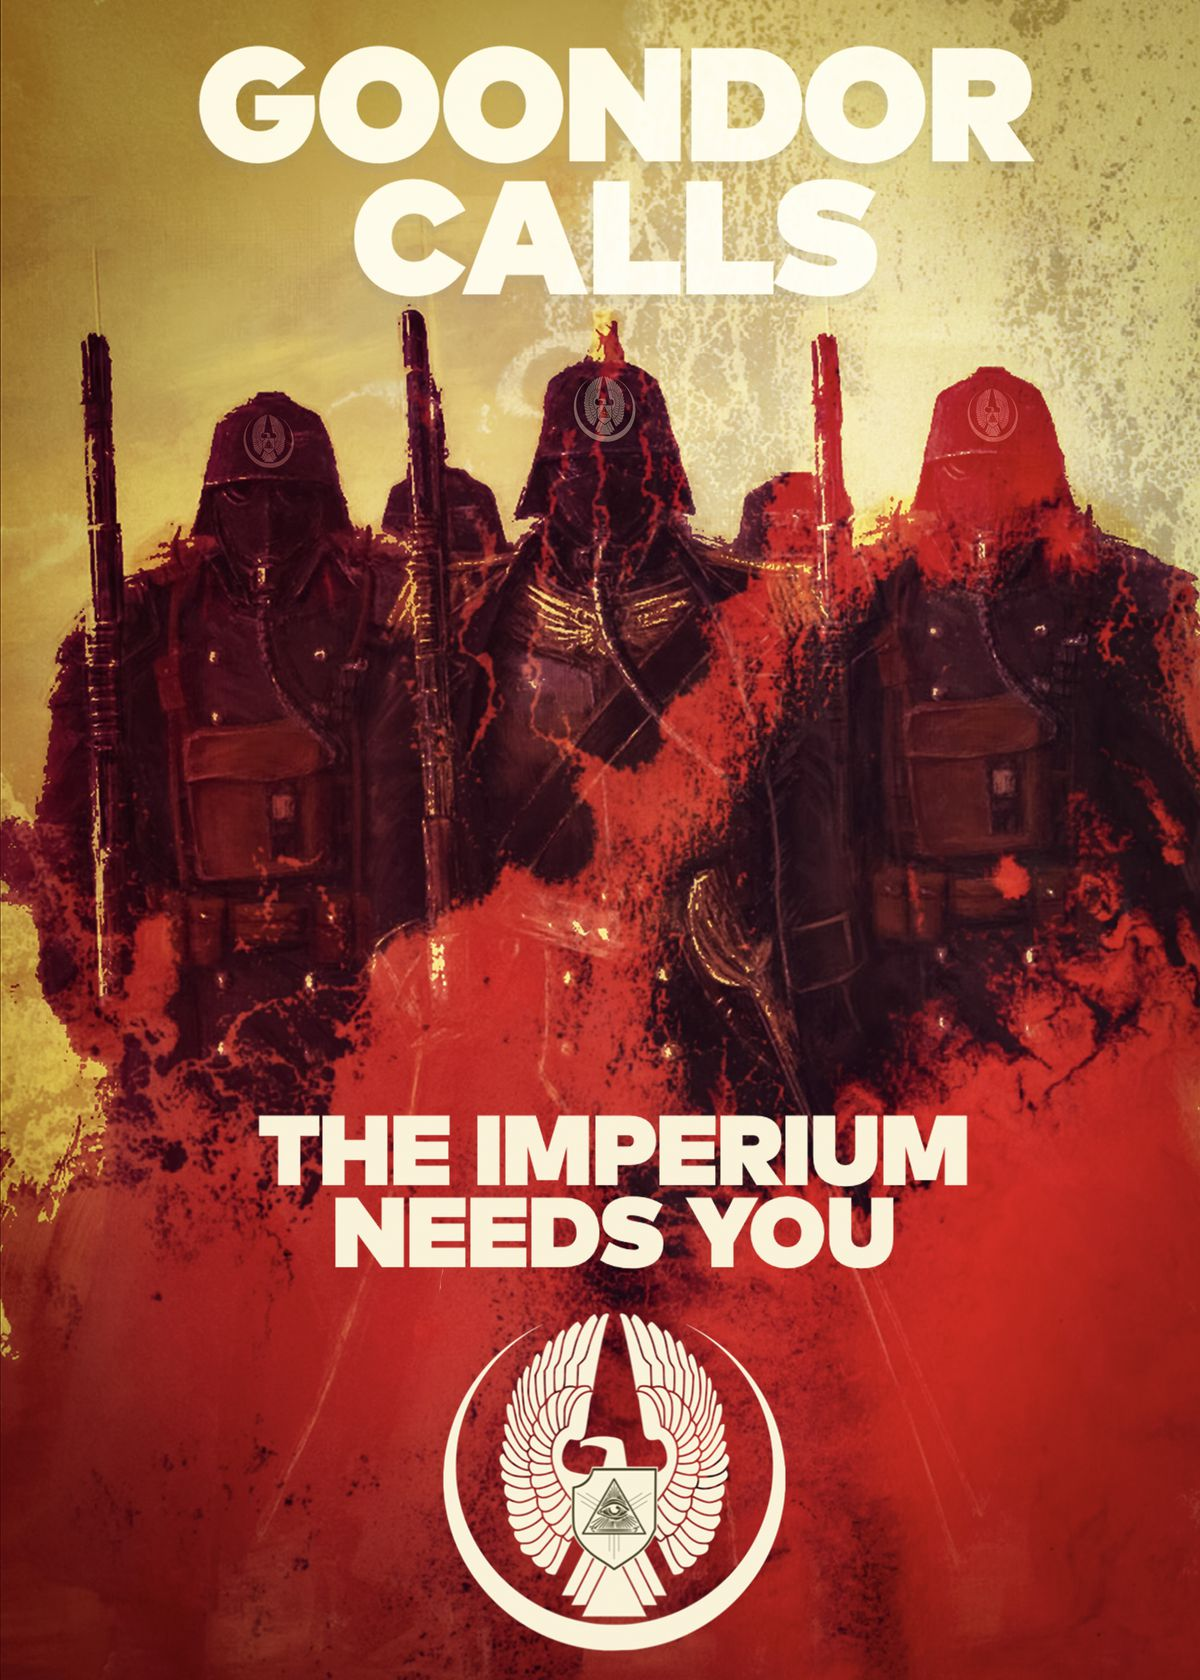 """Three soldiers, dark silhouettes, stand against a blood-colored foreground. """"Goondor calls,"""" reads the text. """"The Imperium needs you."""""""